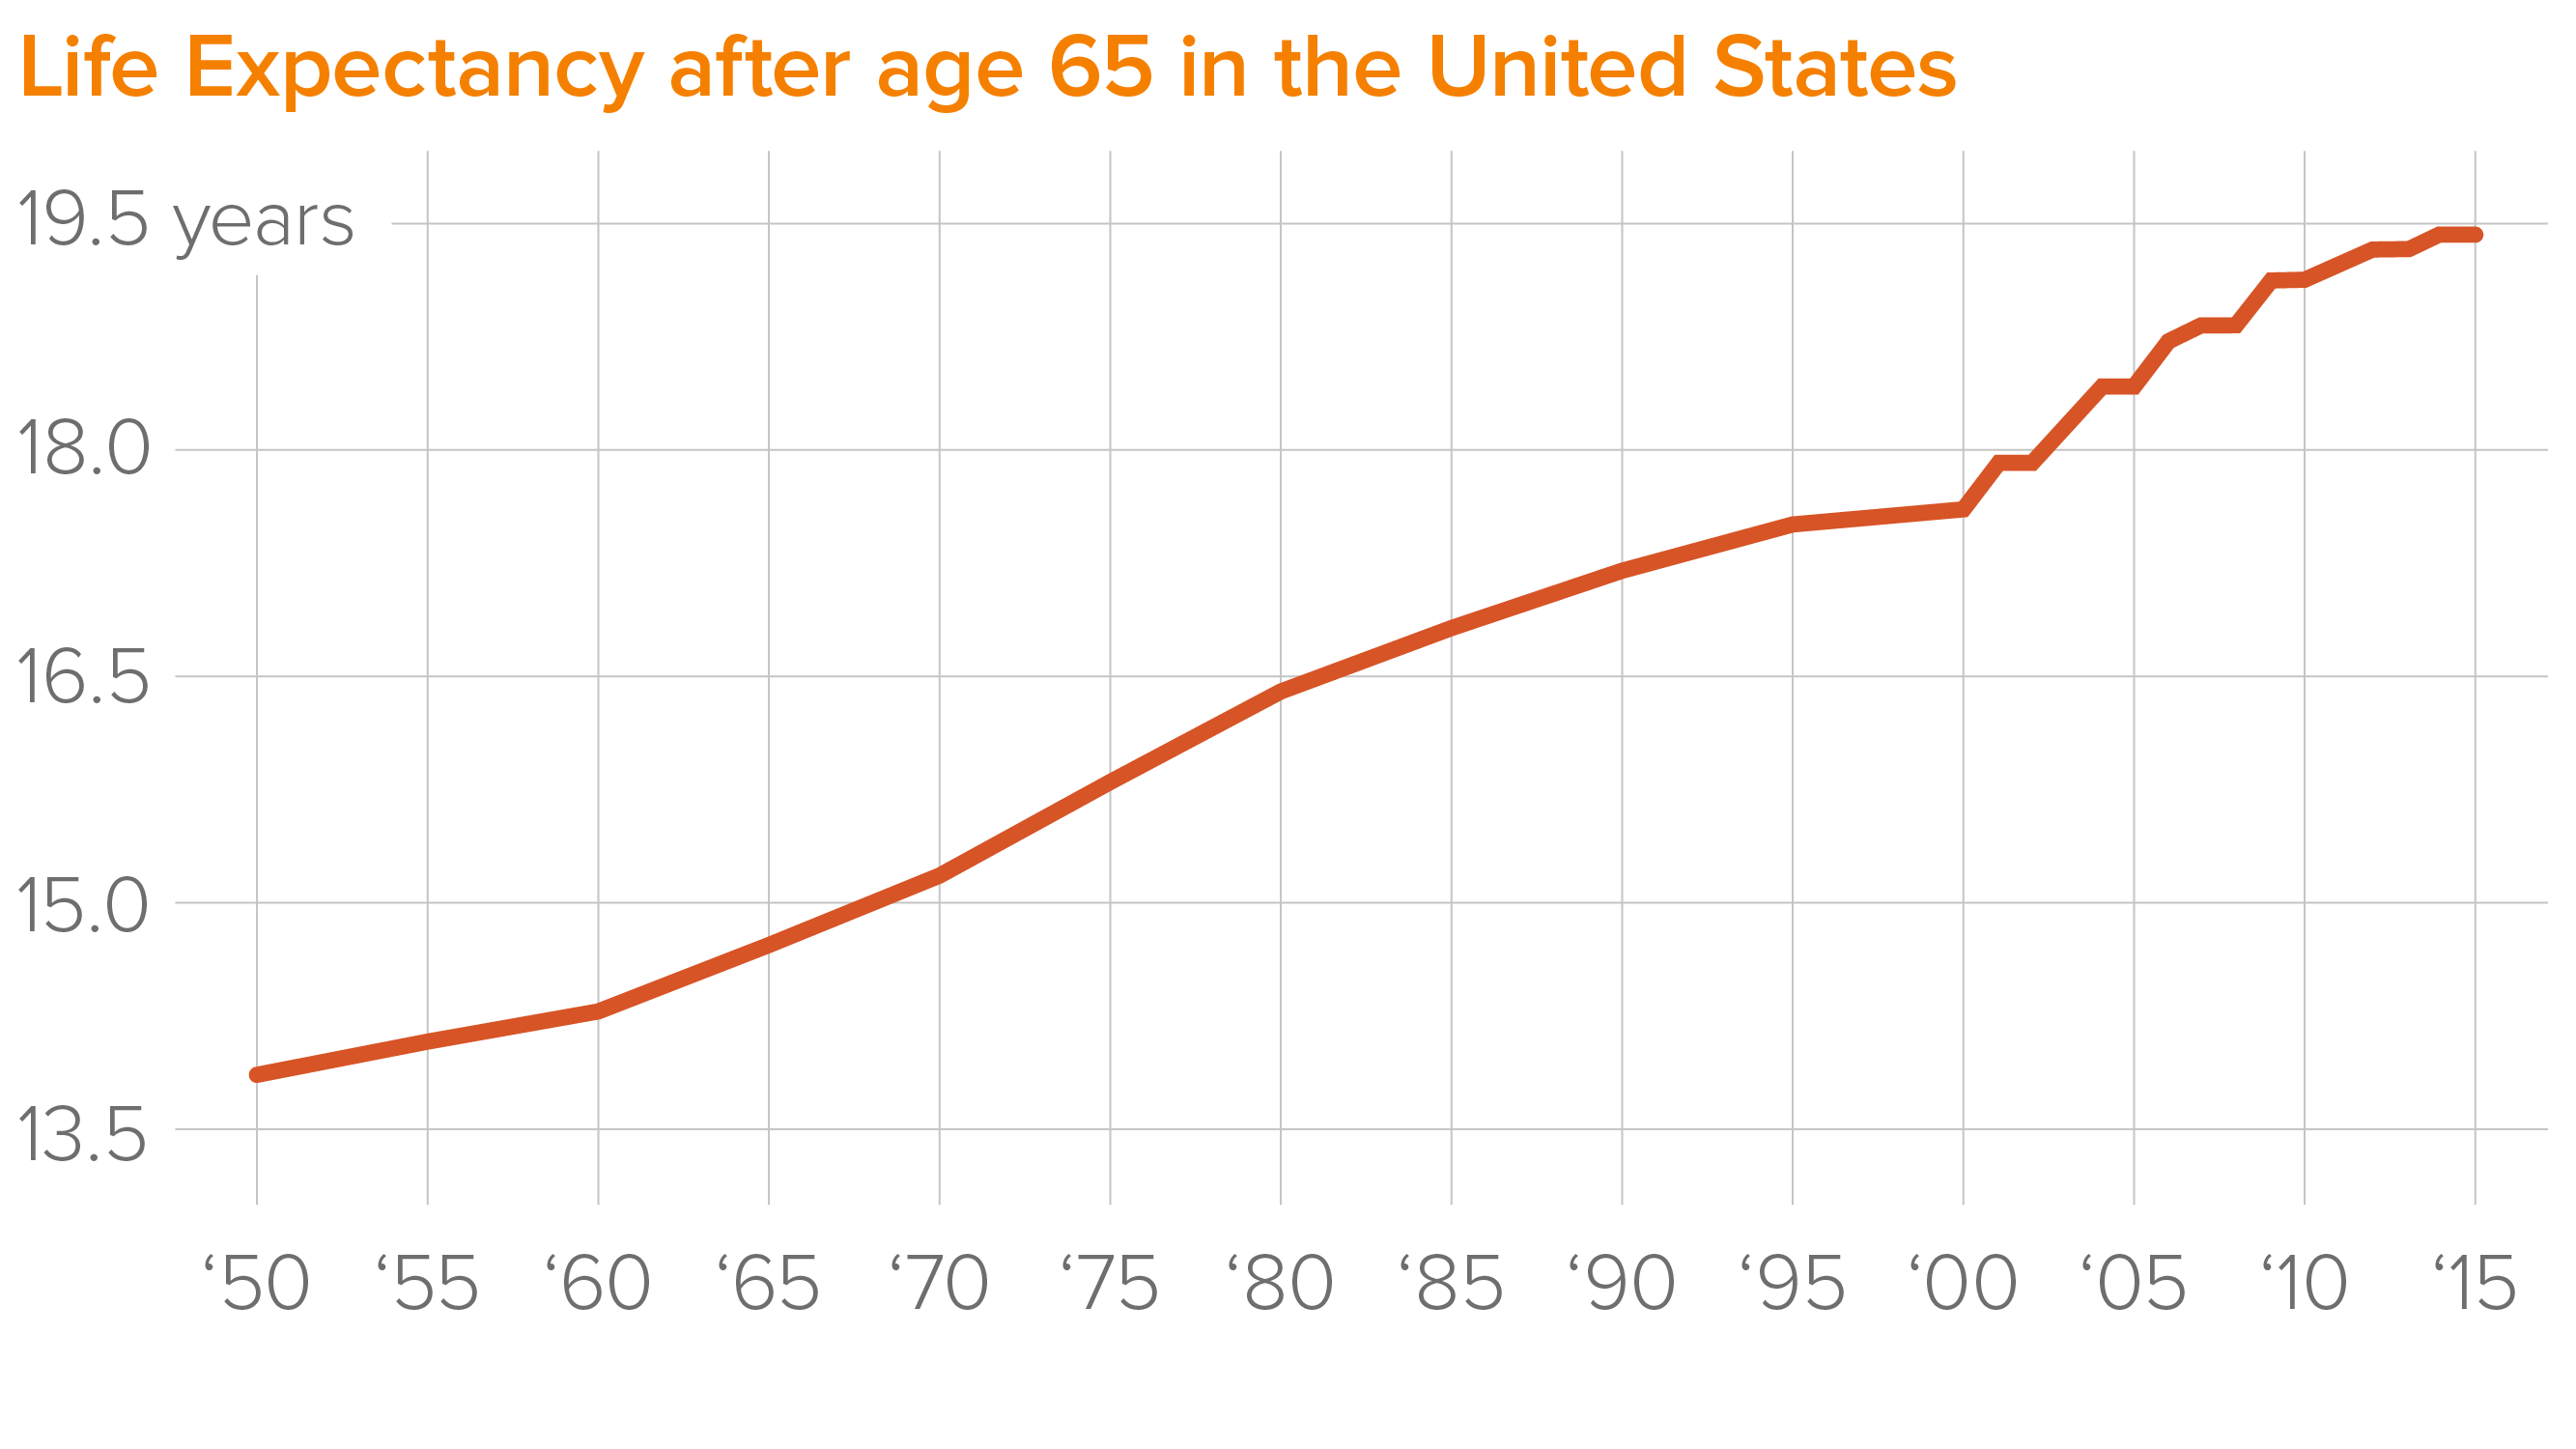 longevity and technology are transforming the way people retire